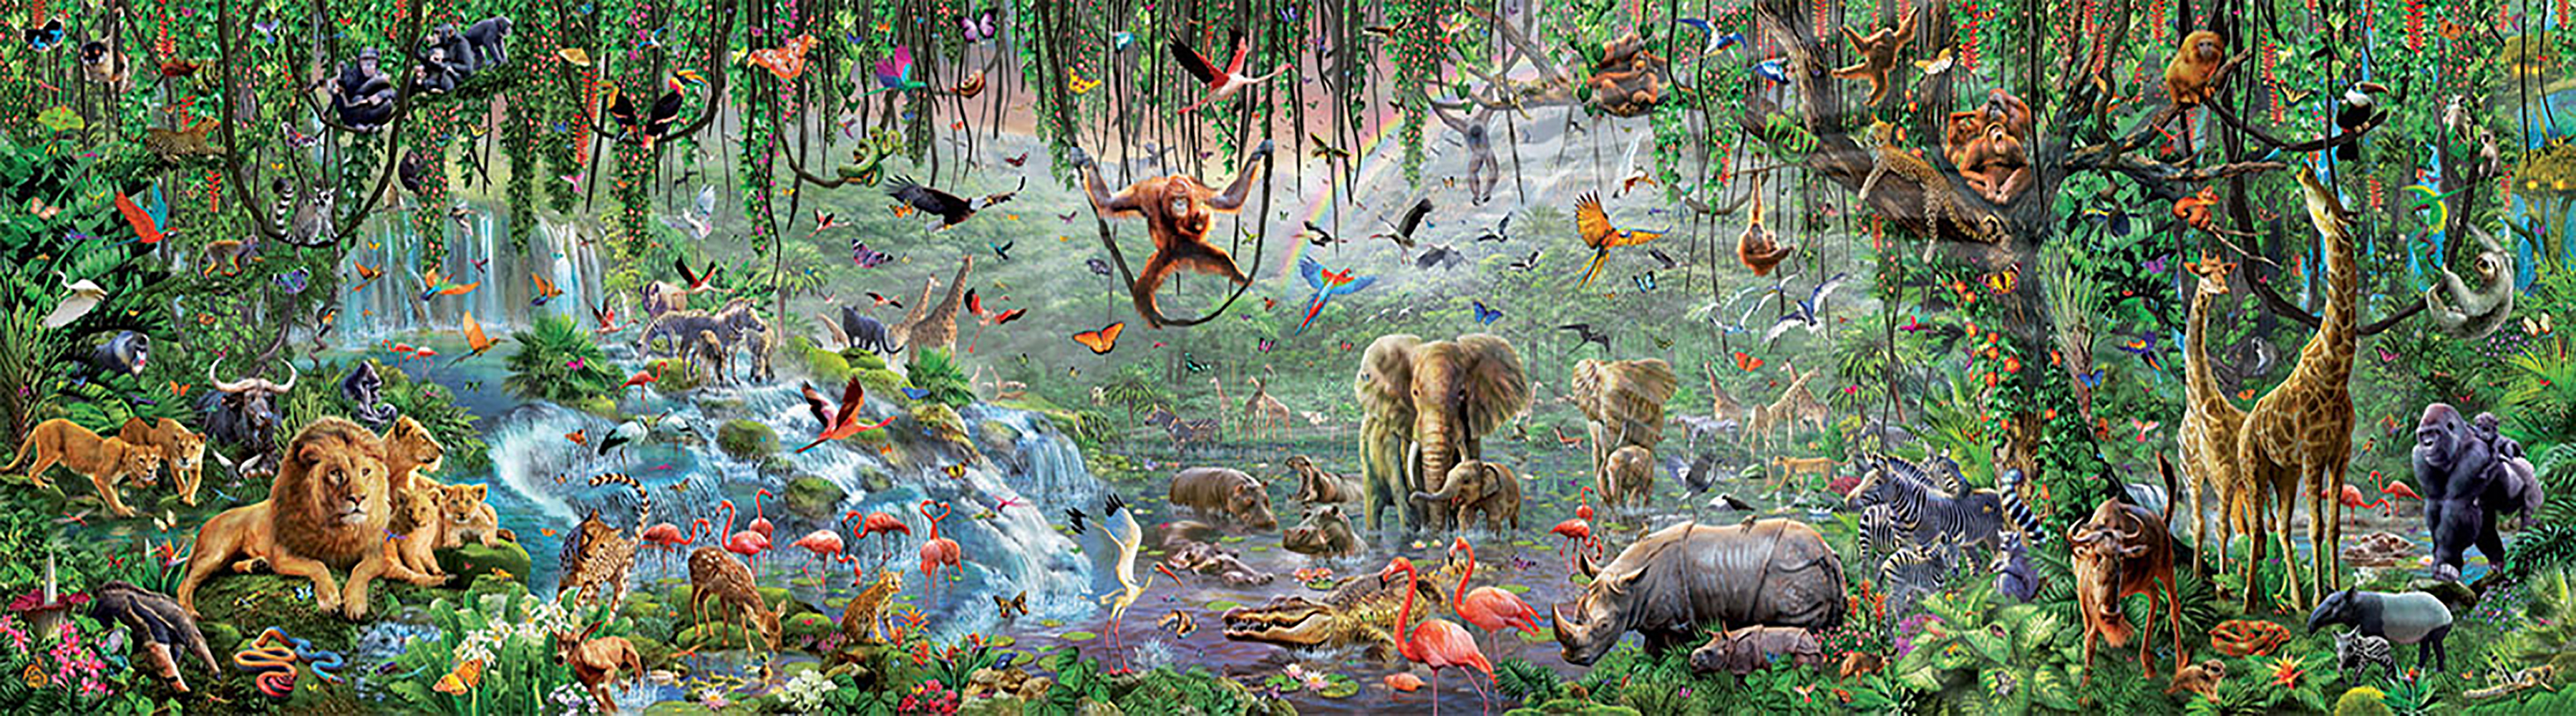 33600 pieces puzzle - Wildlife